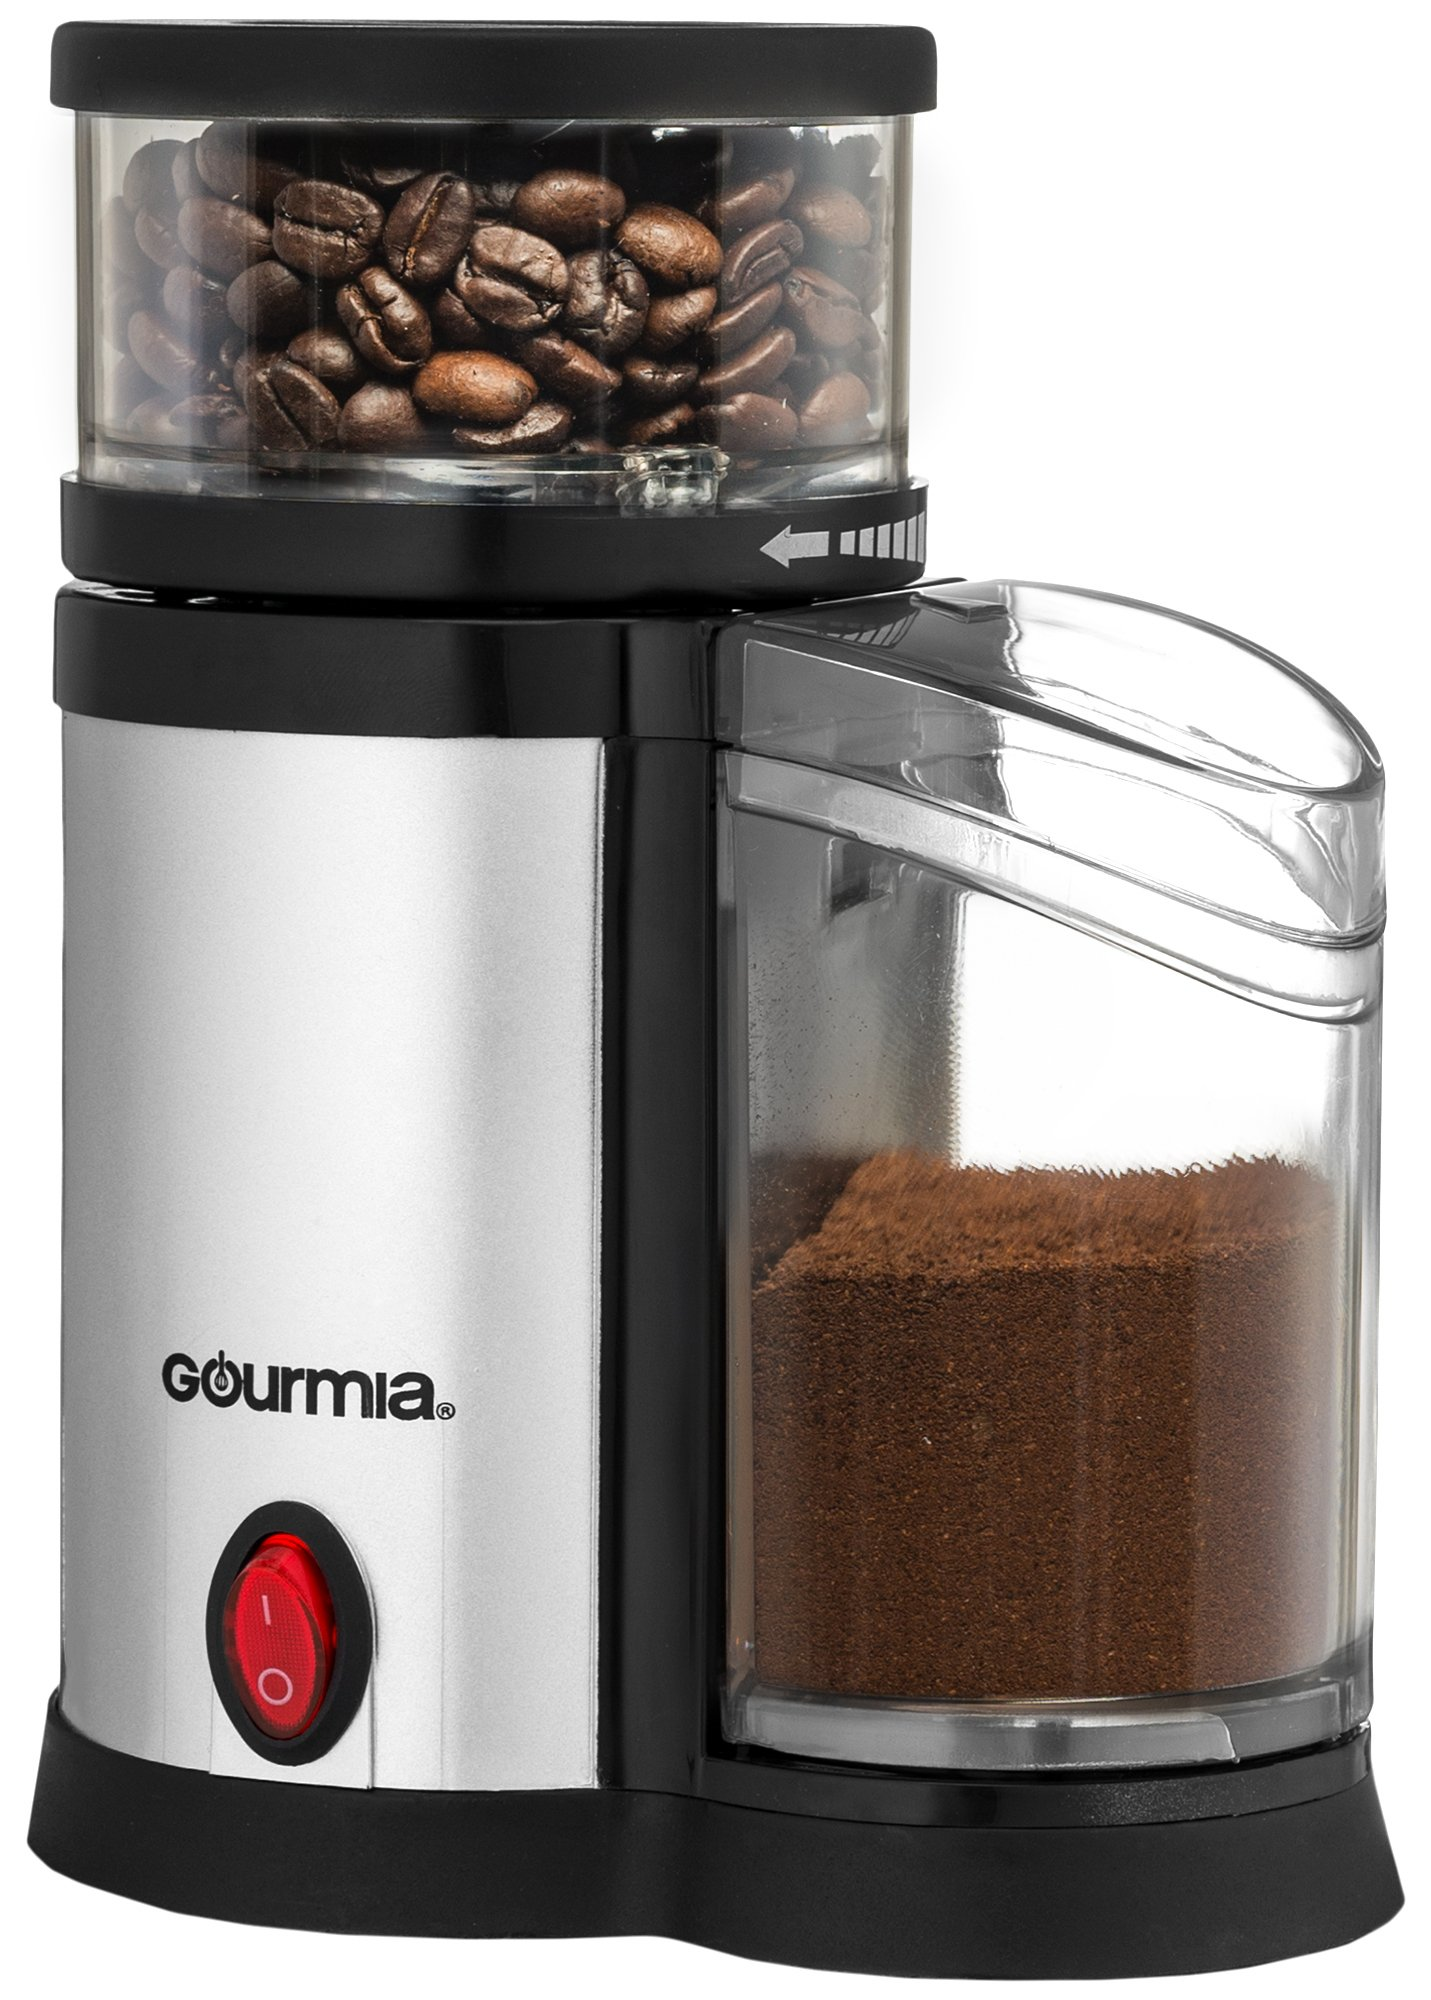 Gourmia GCG165 Compact Electric Burr Coffee Grinder - Adjustable Coarse Grind Size – Sleek and Compact – Easy to Use – Great Gift Idea – ETL Approved by Gourmia